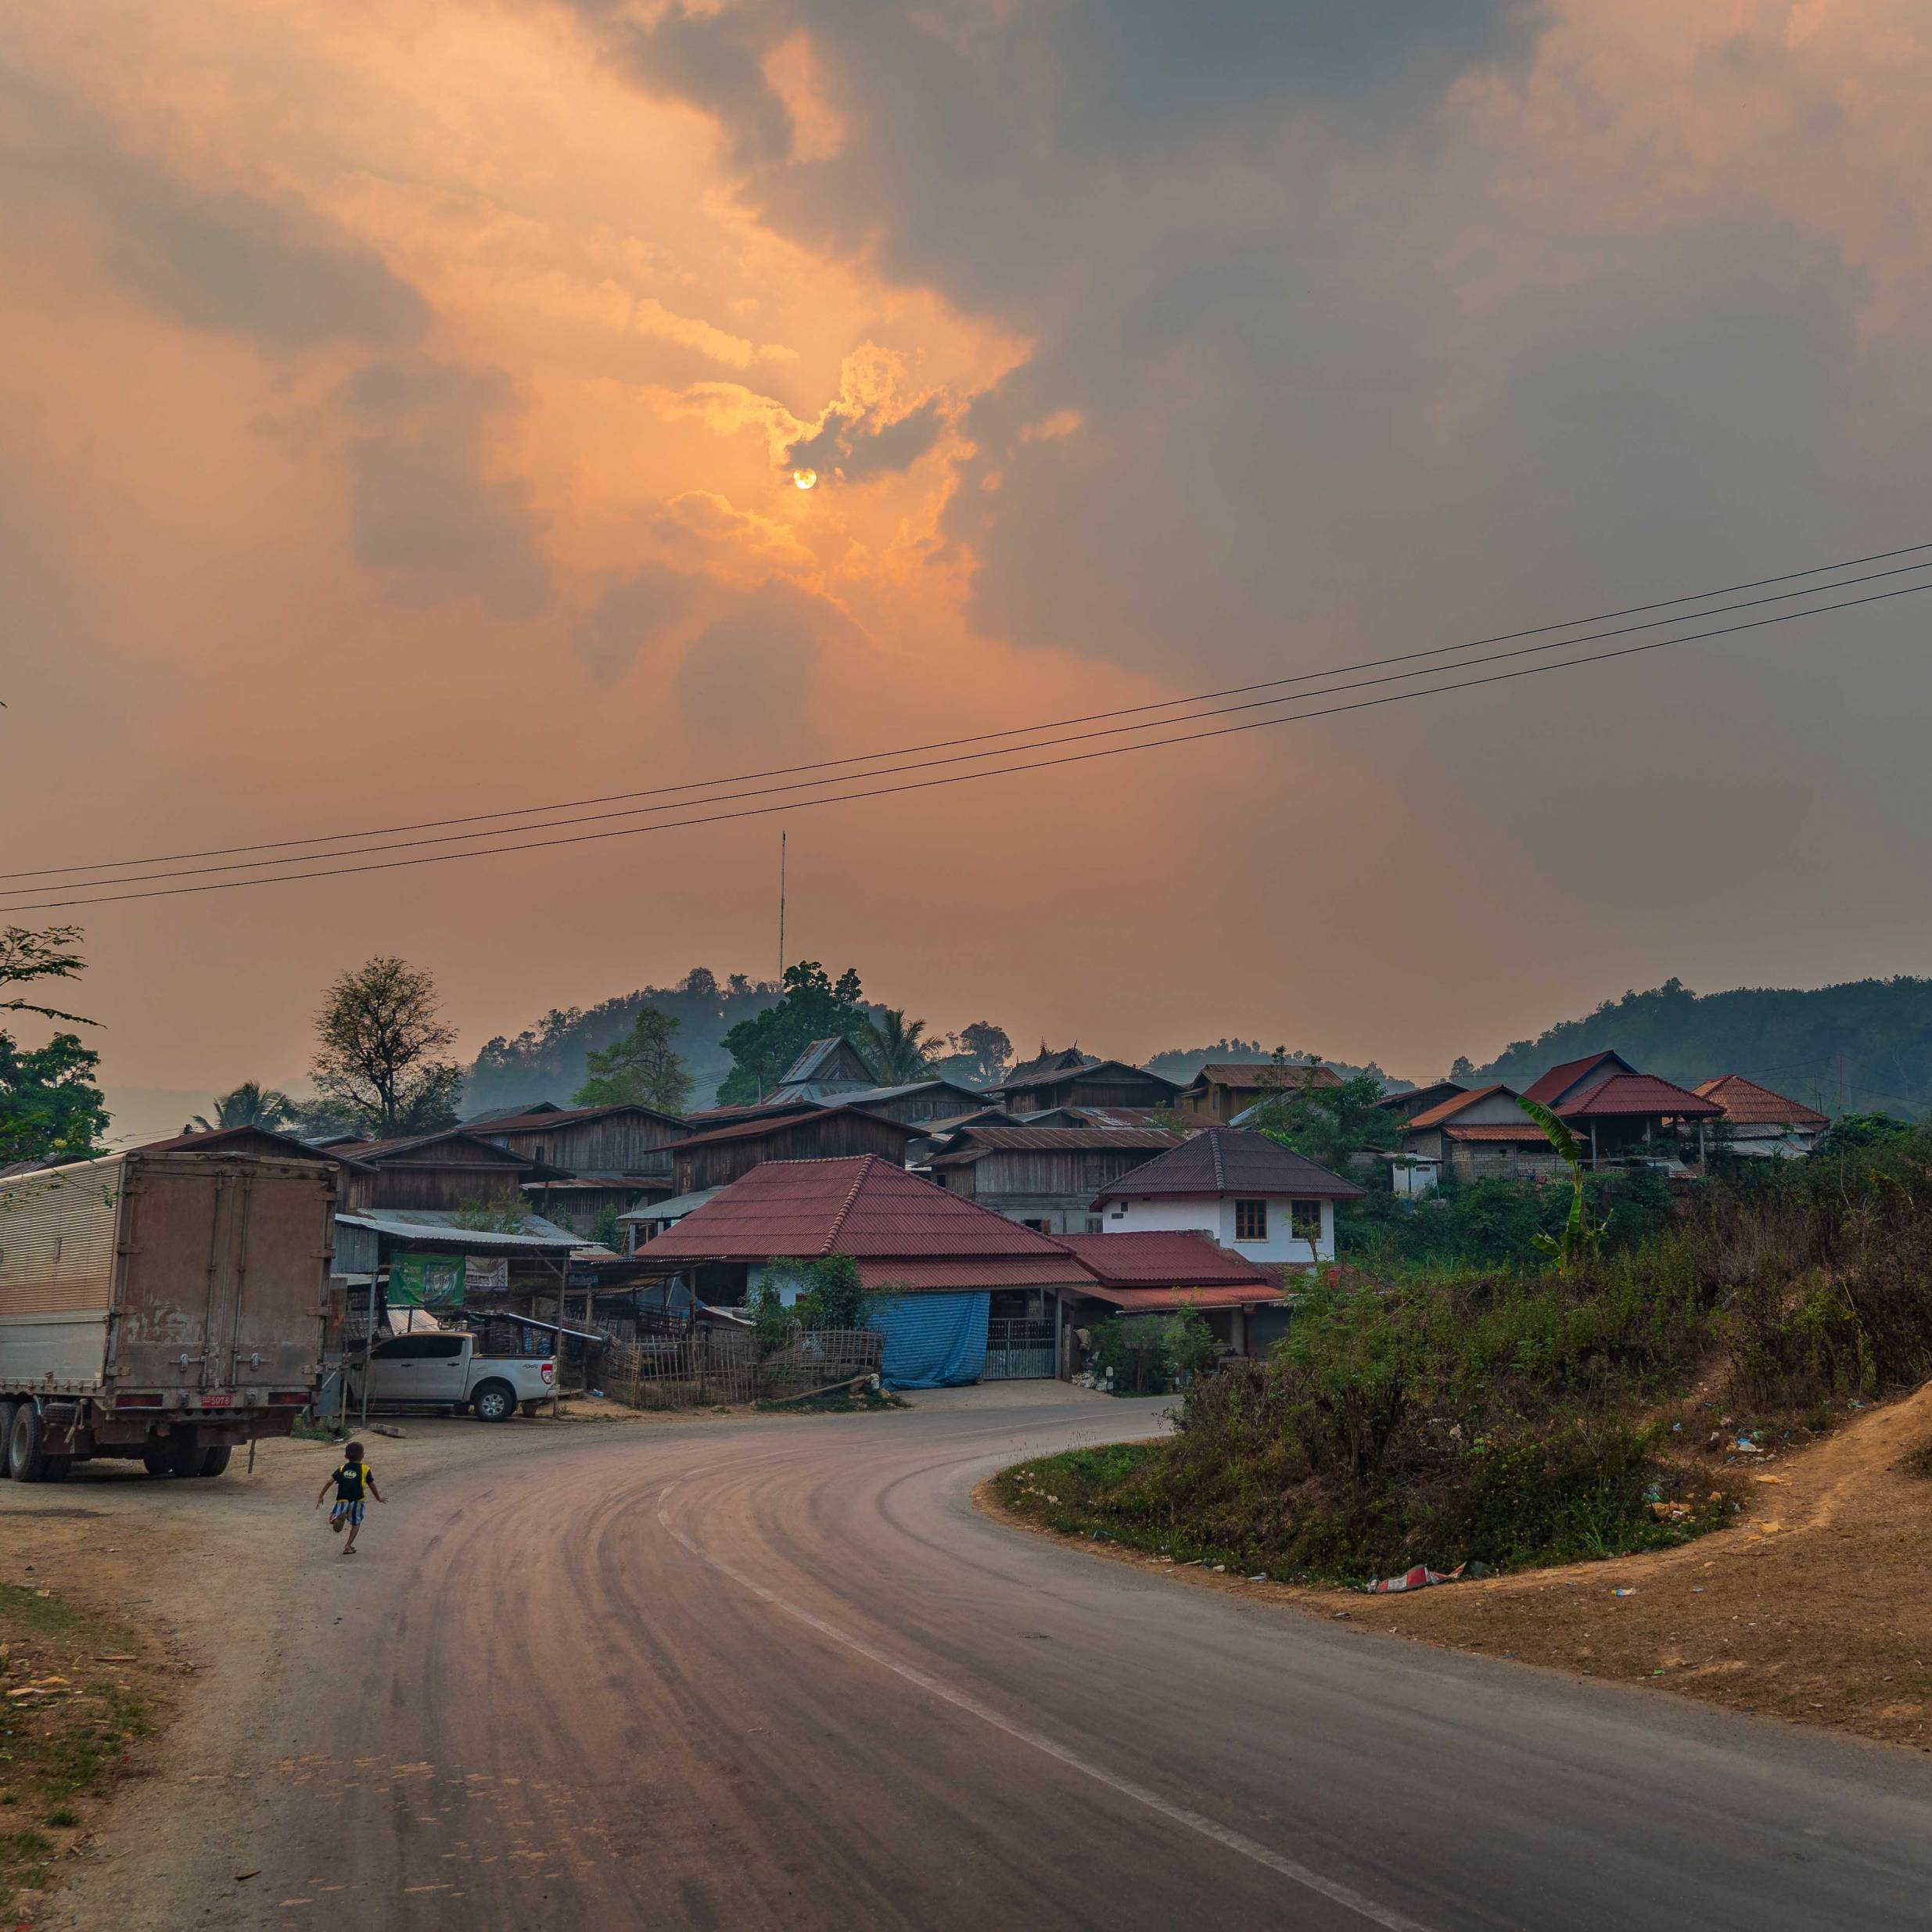 SMALL VILLAGE BETWEEN VANG VIENG AND LUANG PRABANG